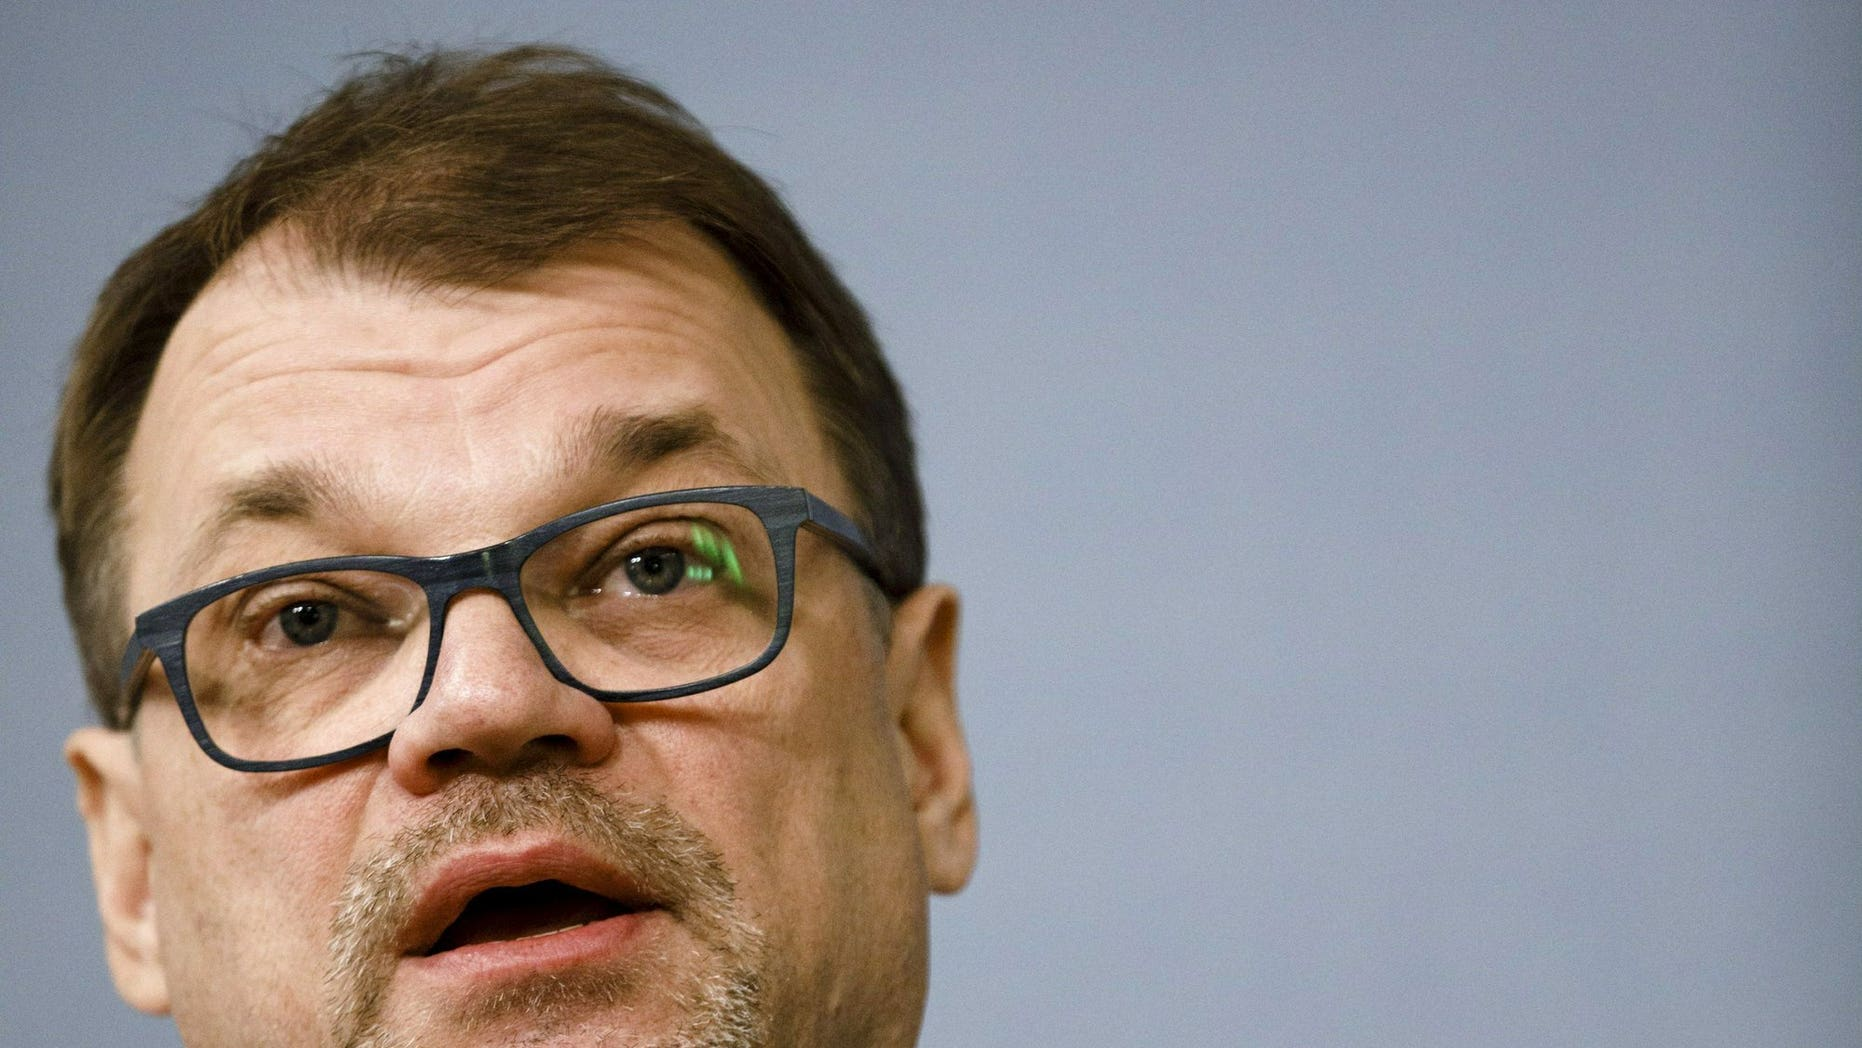 Finnish Prime Minister Juha Sipila announces his cabinet's resignation in a press conference at the prime minister's official residence Kes'ranta in Helsinki, Finland, Friday, March 8, 2019. Sipila's center-right government resigned Friday after failing to push through a planned social and health reform.